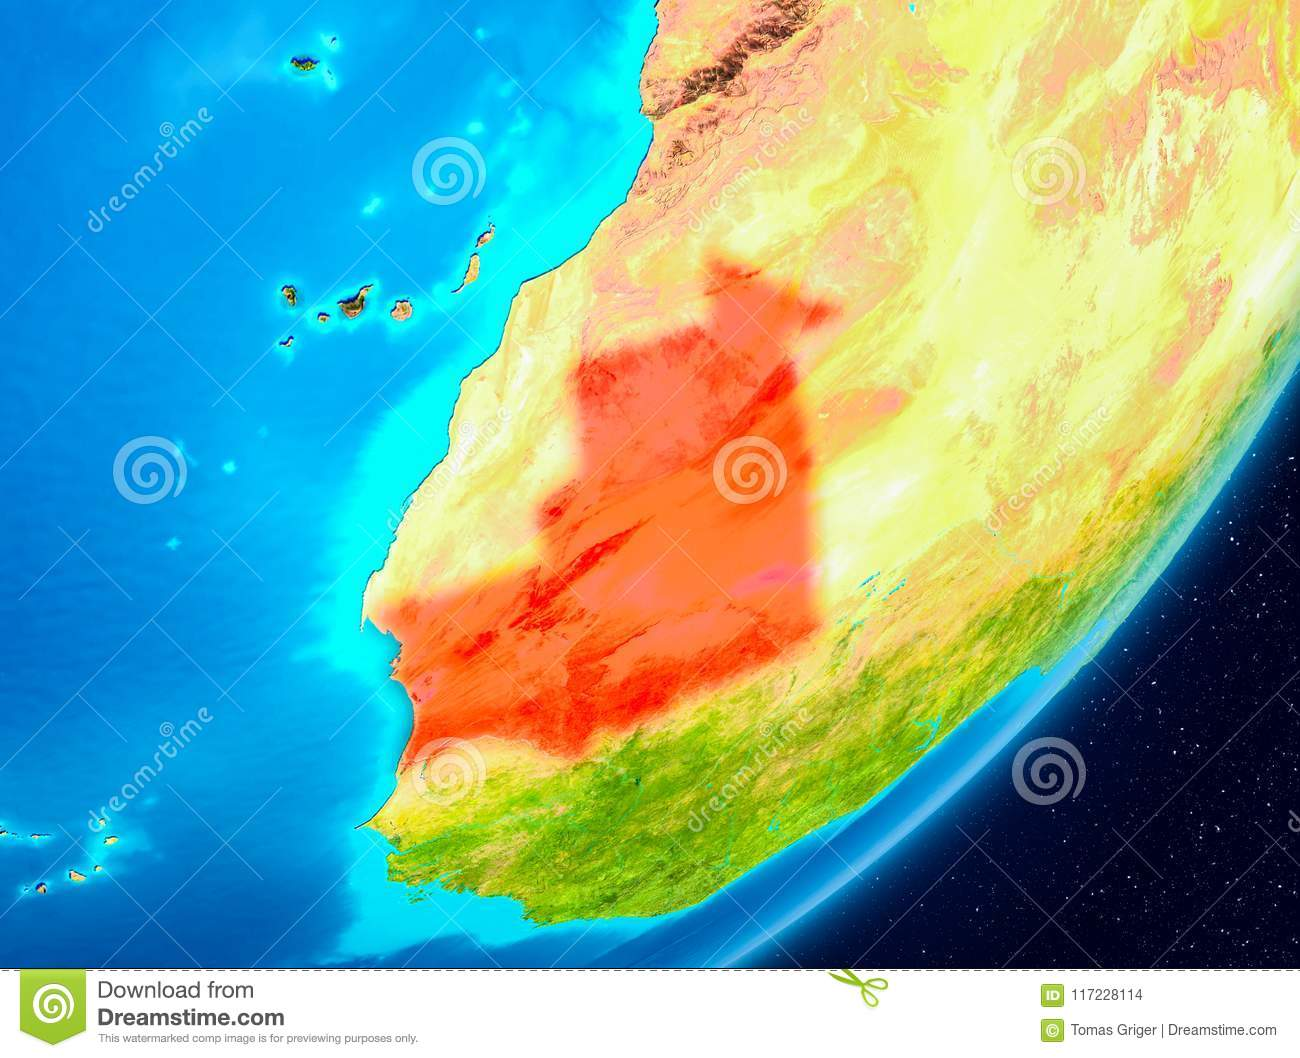 Orbit View Of Mauritania In Red Stock Illustration ... on satellite map of caribbean islands, satellite map of tunisia, satellite map of trinidad and tobago, satellite map of vatican city, satellite map of germany, satellite map of the bahamas, satellite map of haiti, satellite map of czech republic, satellite map of iceland, satellite map of somalia, satellite map of united states of america, satellite map of canada, satellite map of the gambia, satellite map of saipan, satellite map of kosovo, satellite map of the vatican, satellite map of solomon islands, satellite map of ireland, satellite map of brunei darussalam, satellite map of qatar,